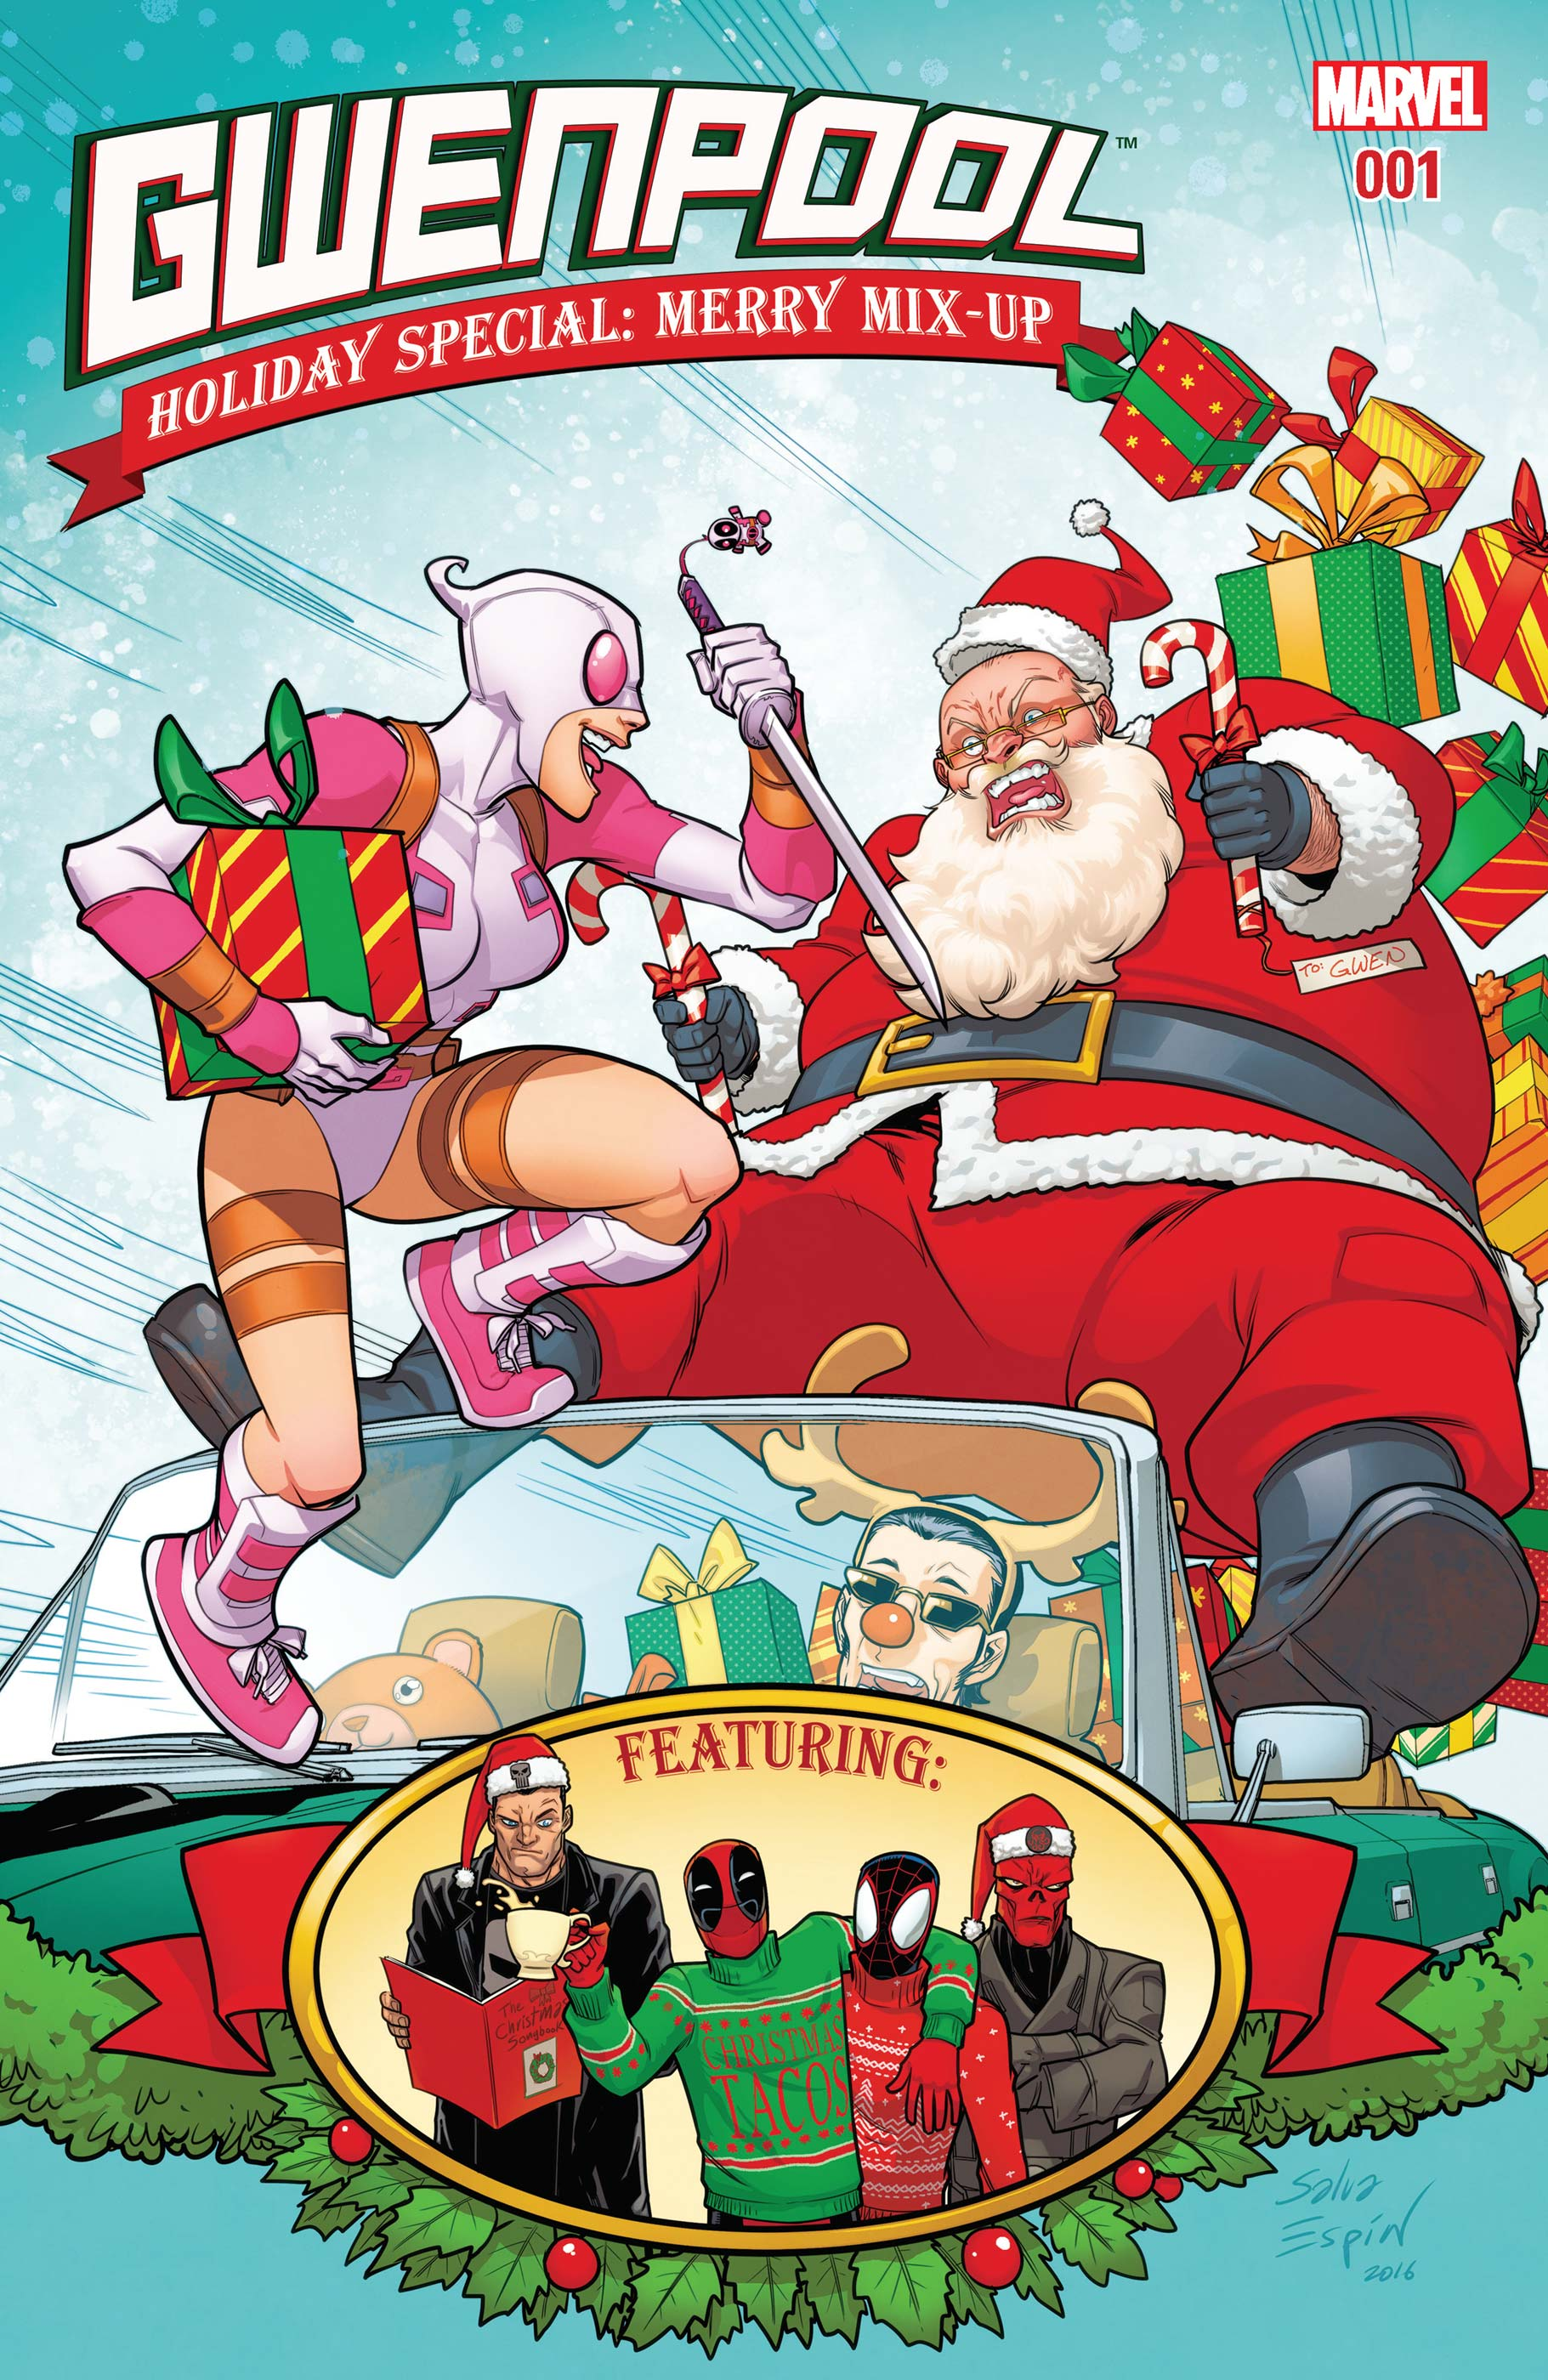 Gwenpool Holiday Special: Merry Mix-Up (2016) #1